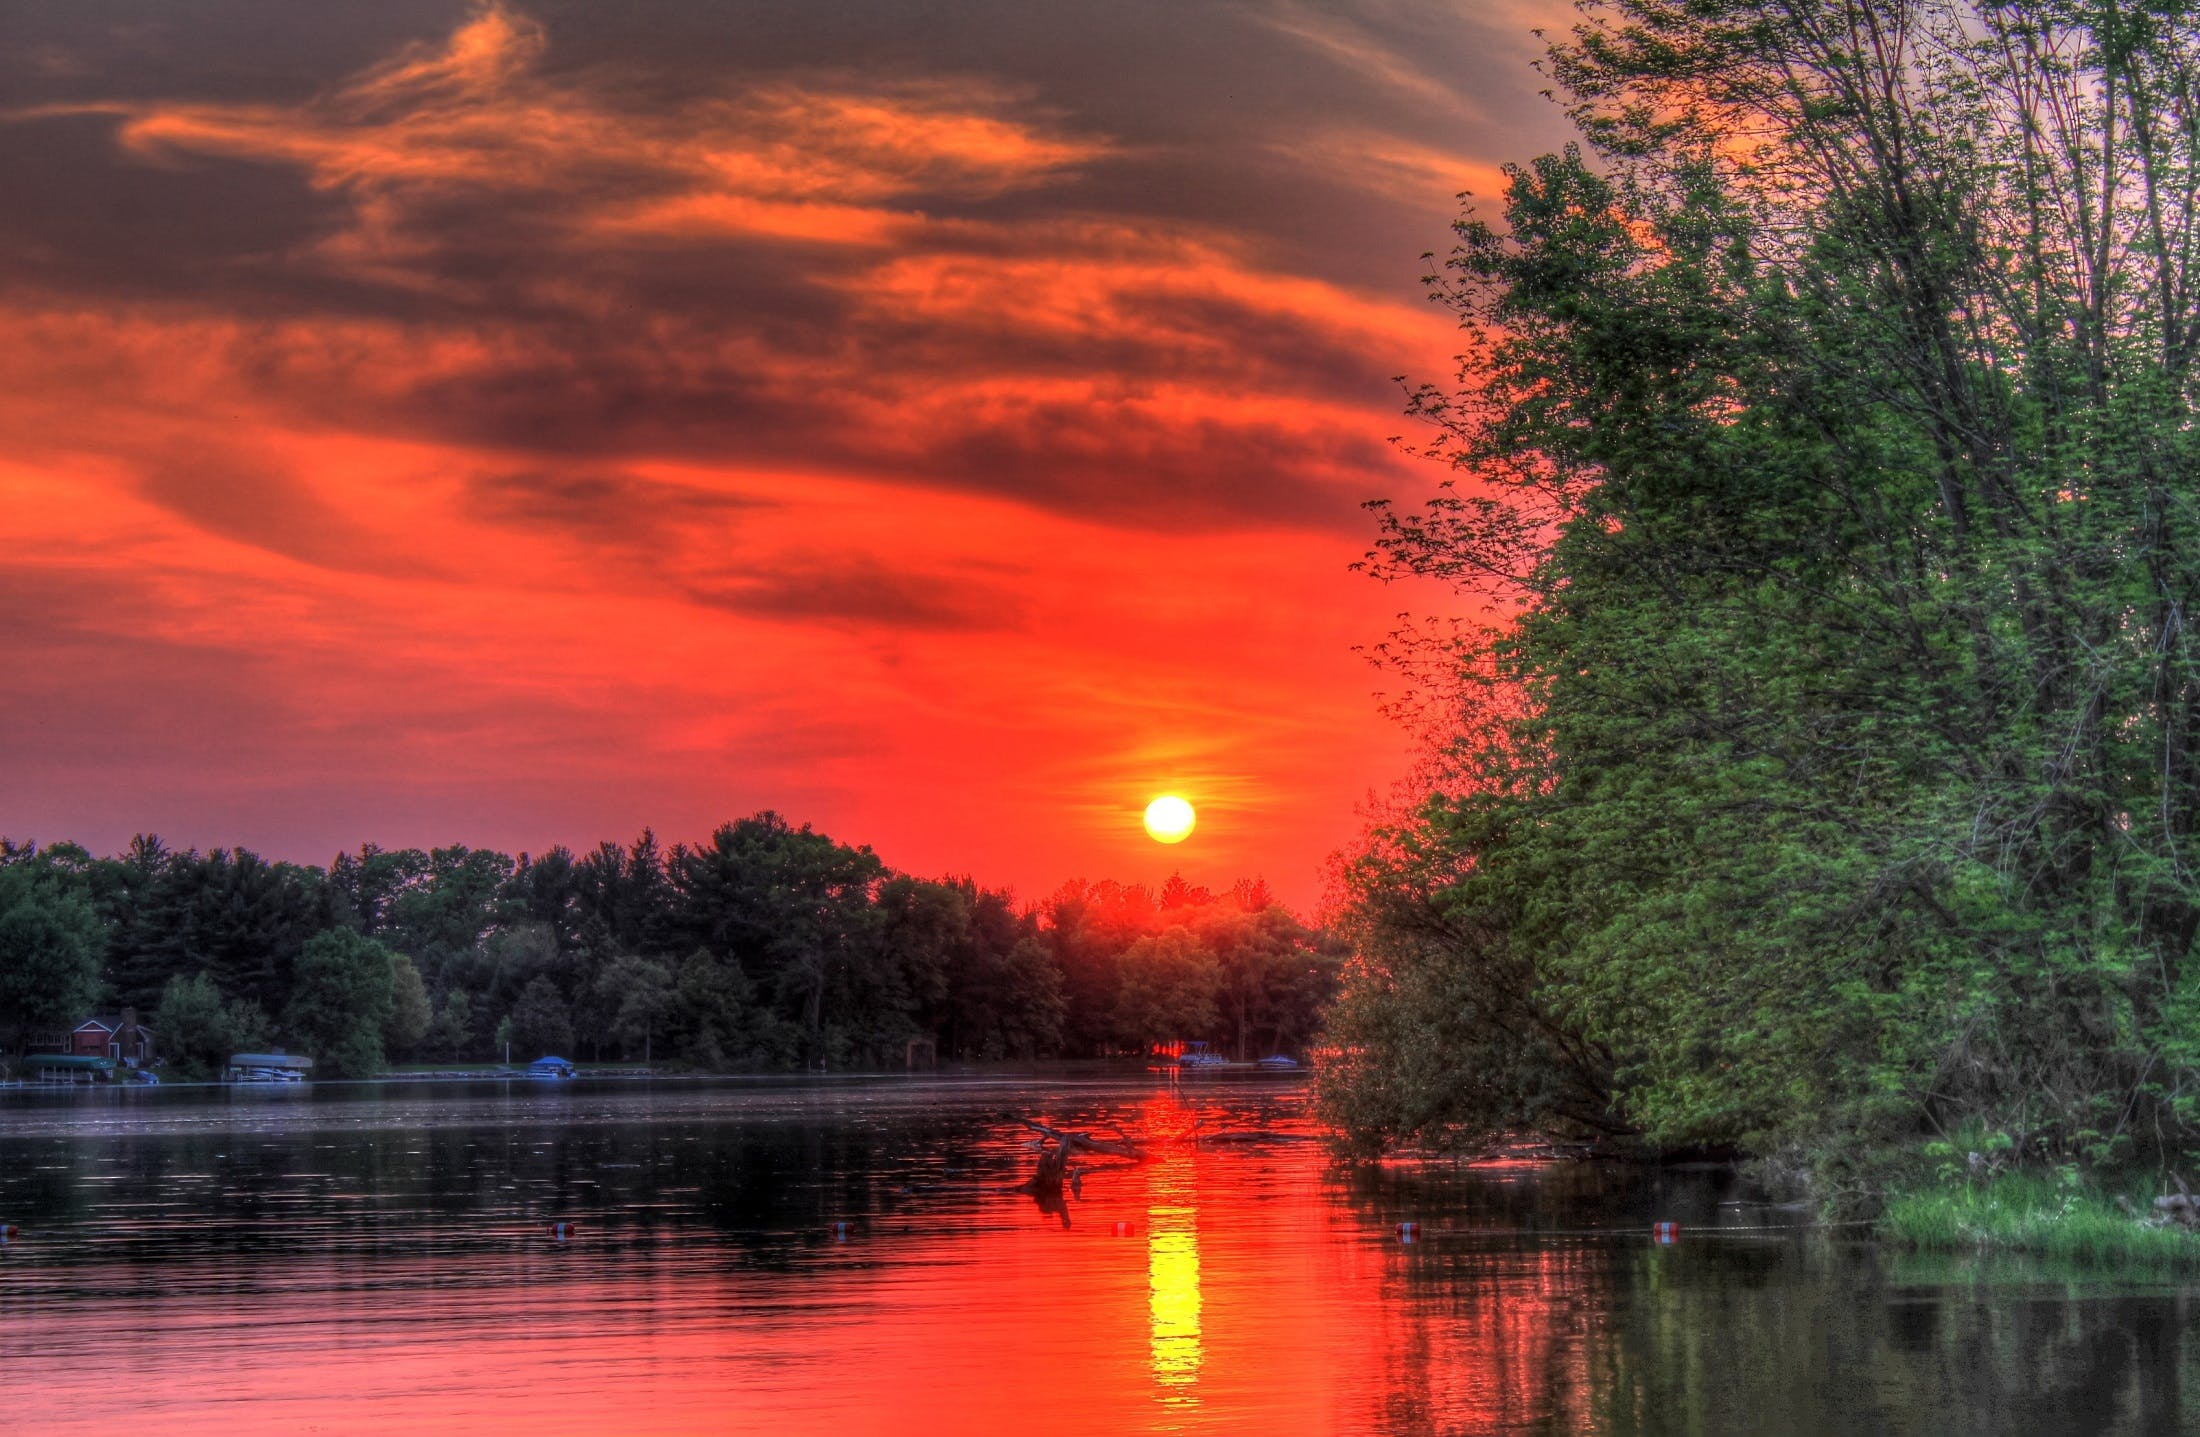 Scenic View of Lake during Sunset